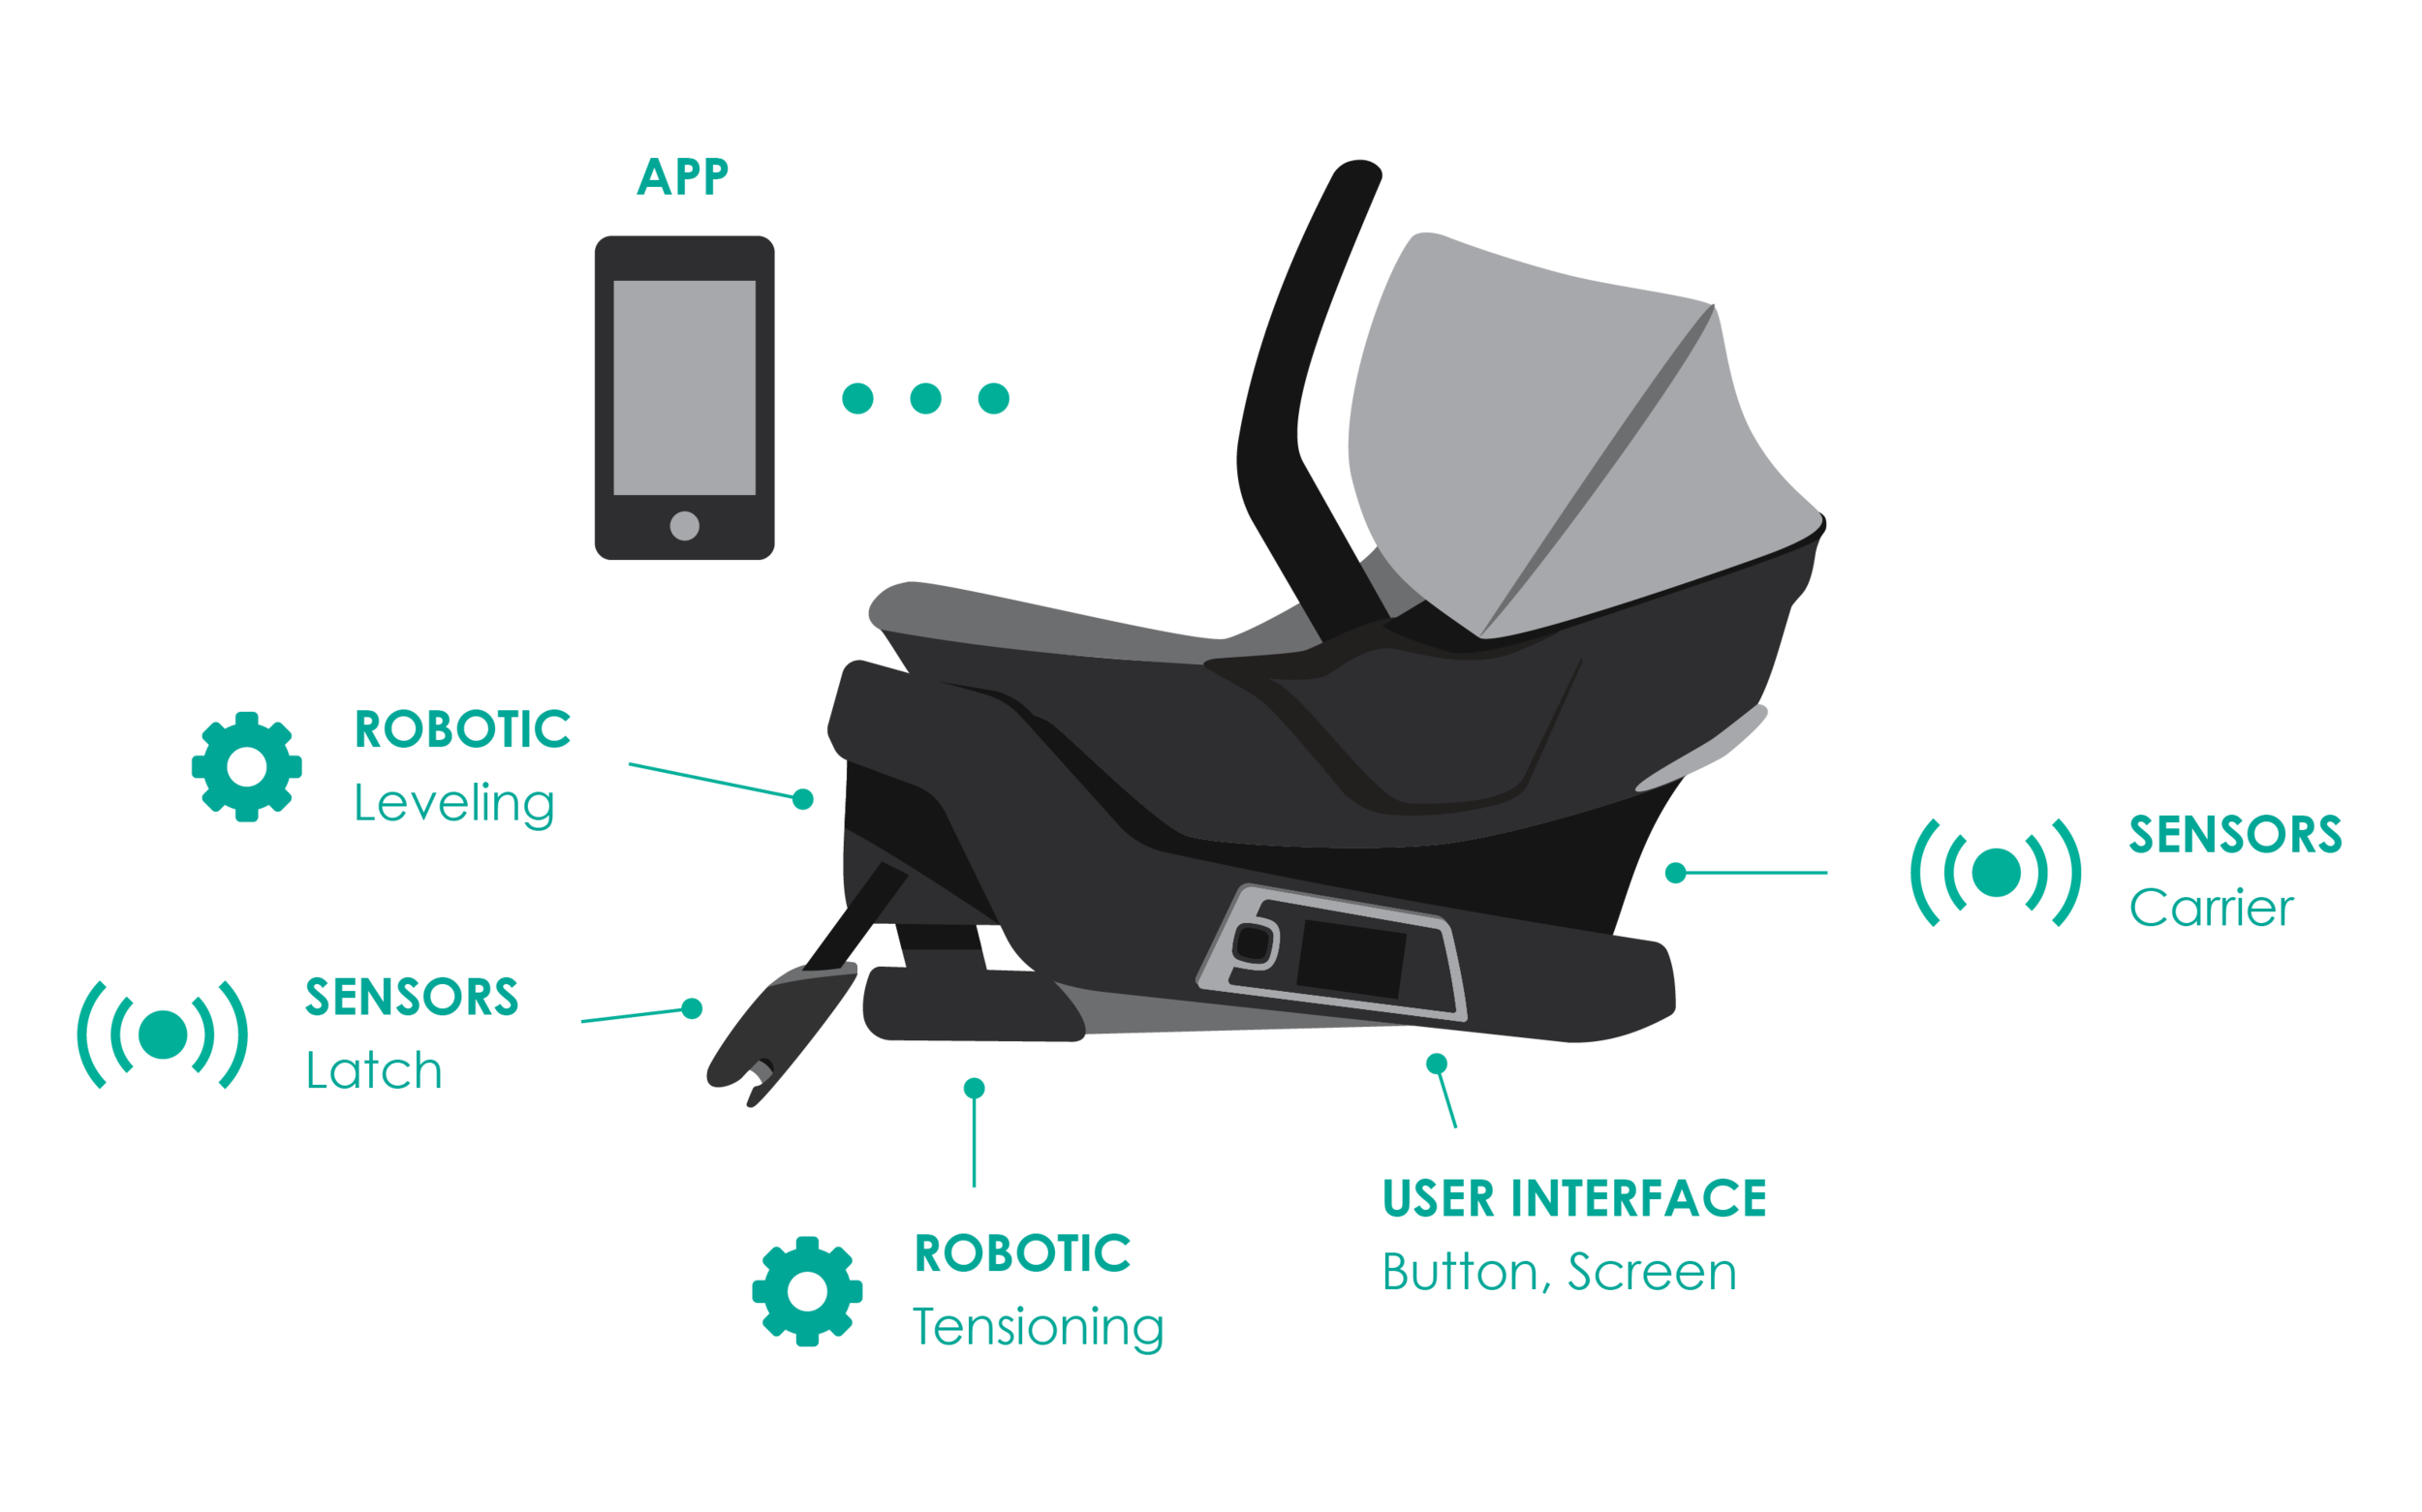 4moms Infant Car Seat: System Overview